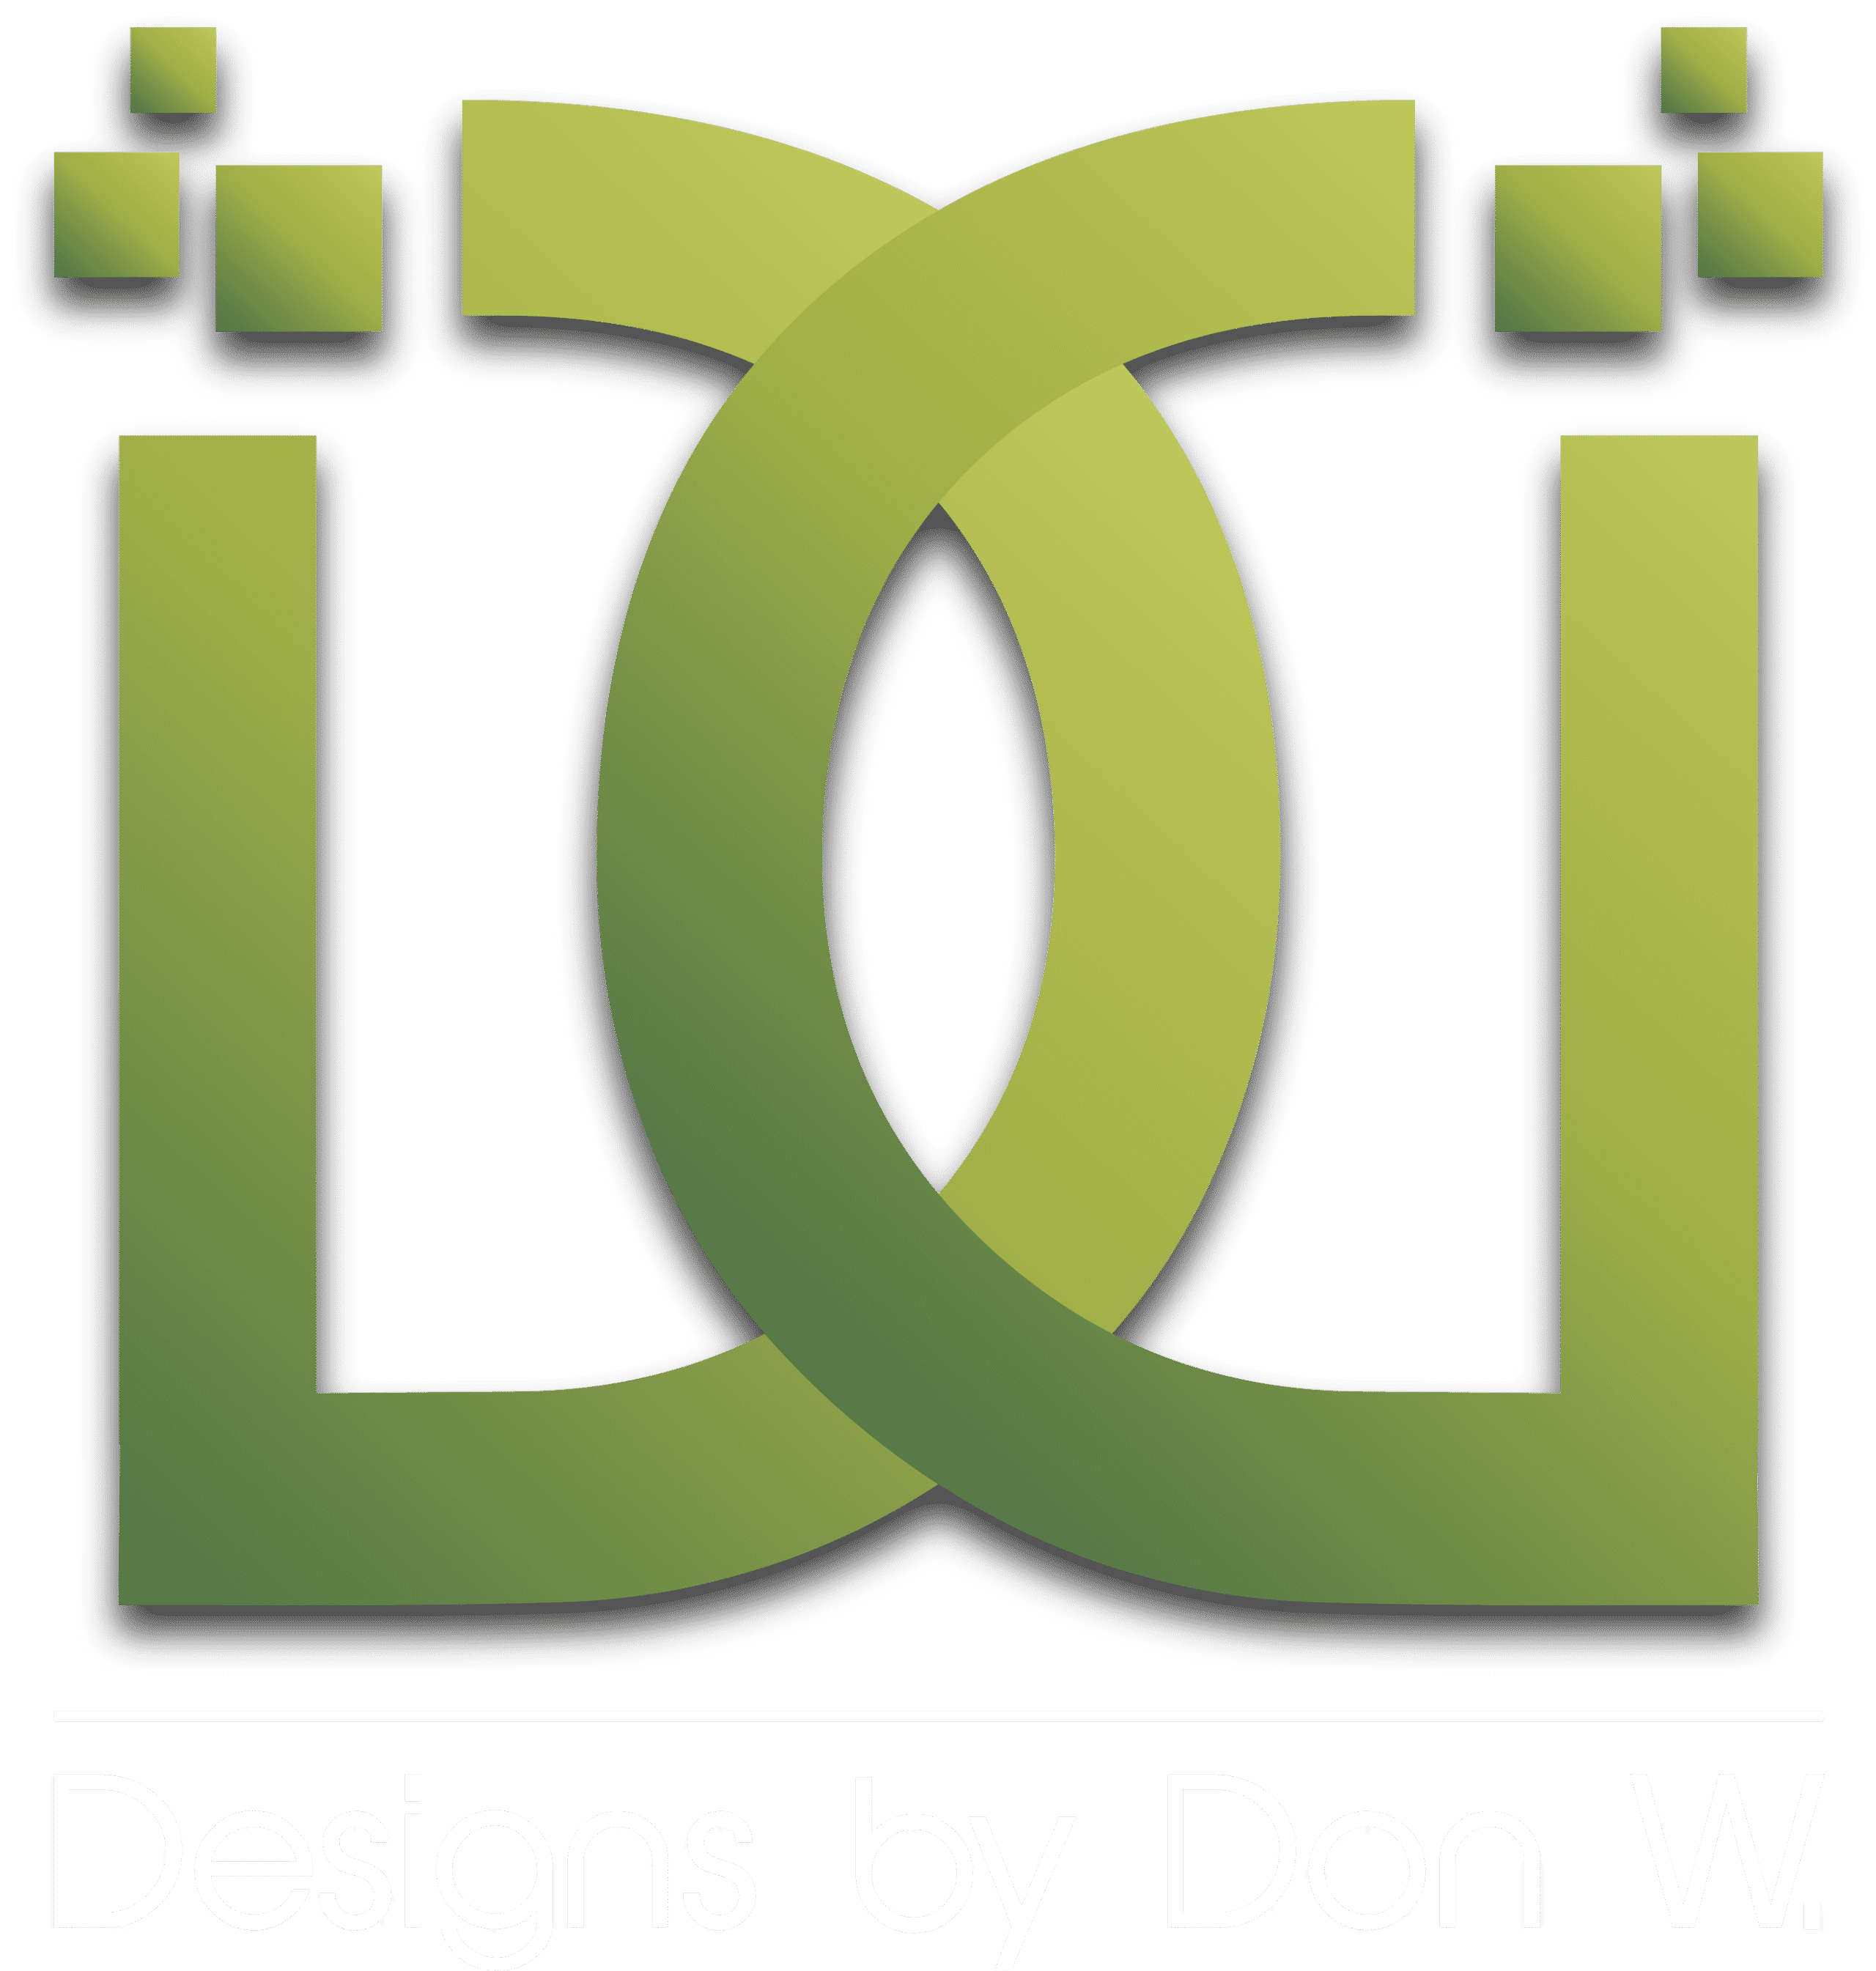 Designs By Don W